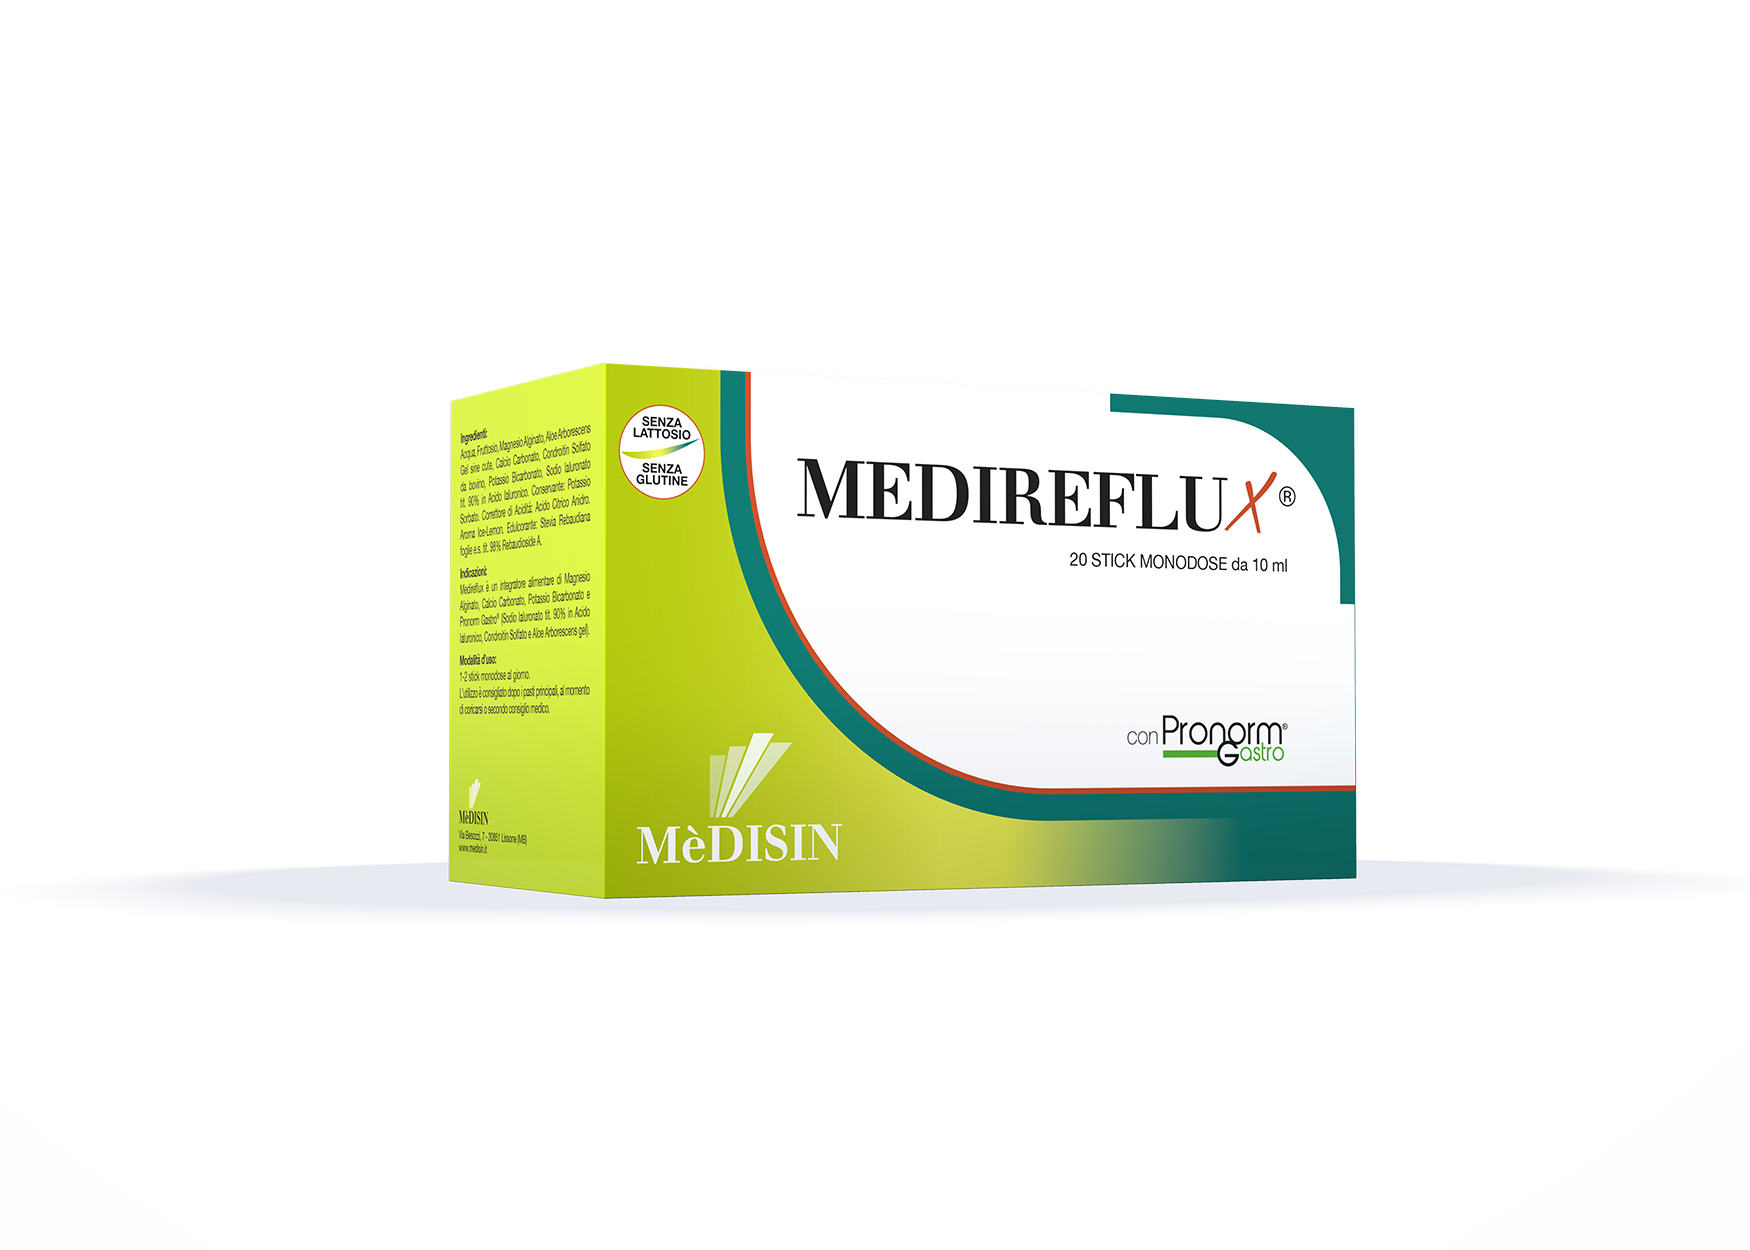 Medireflux SX copia